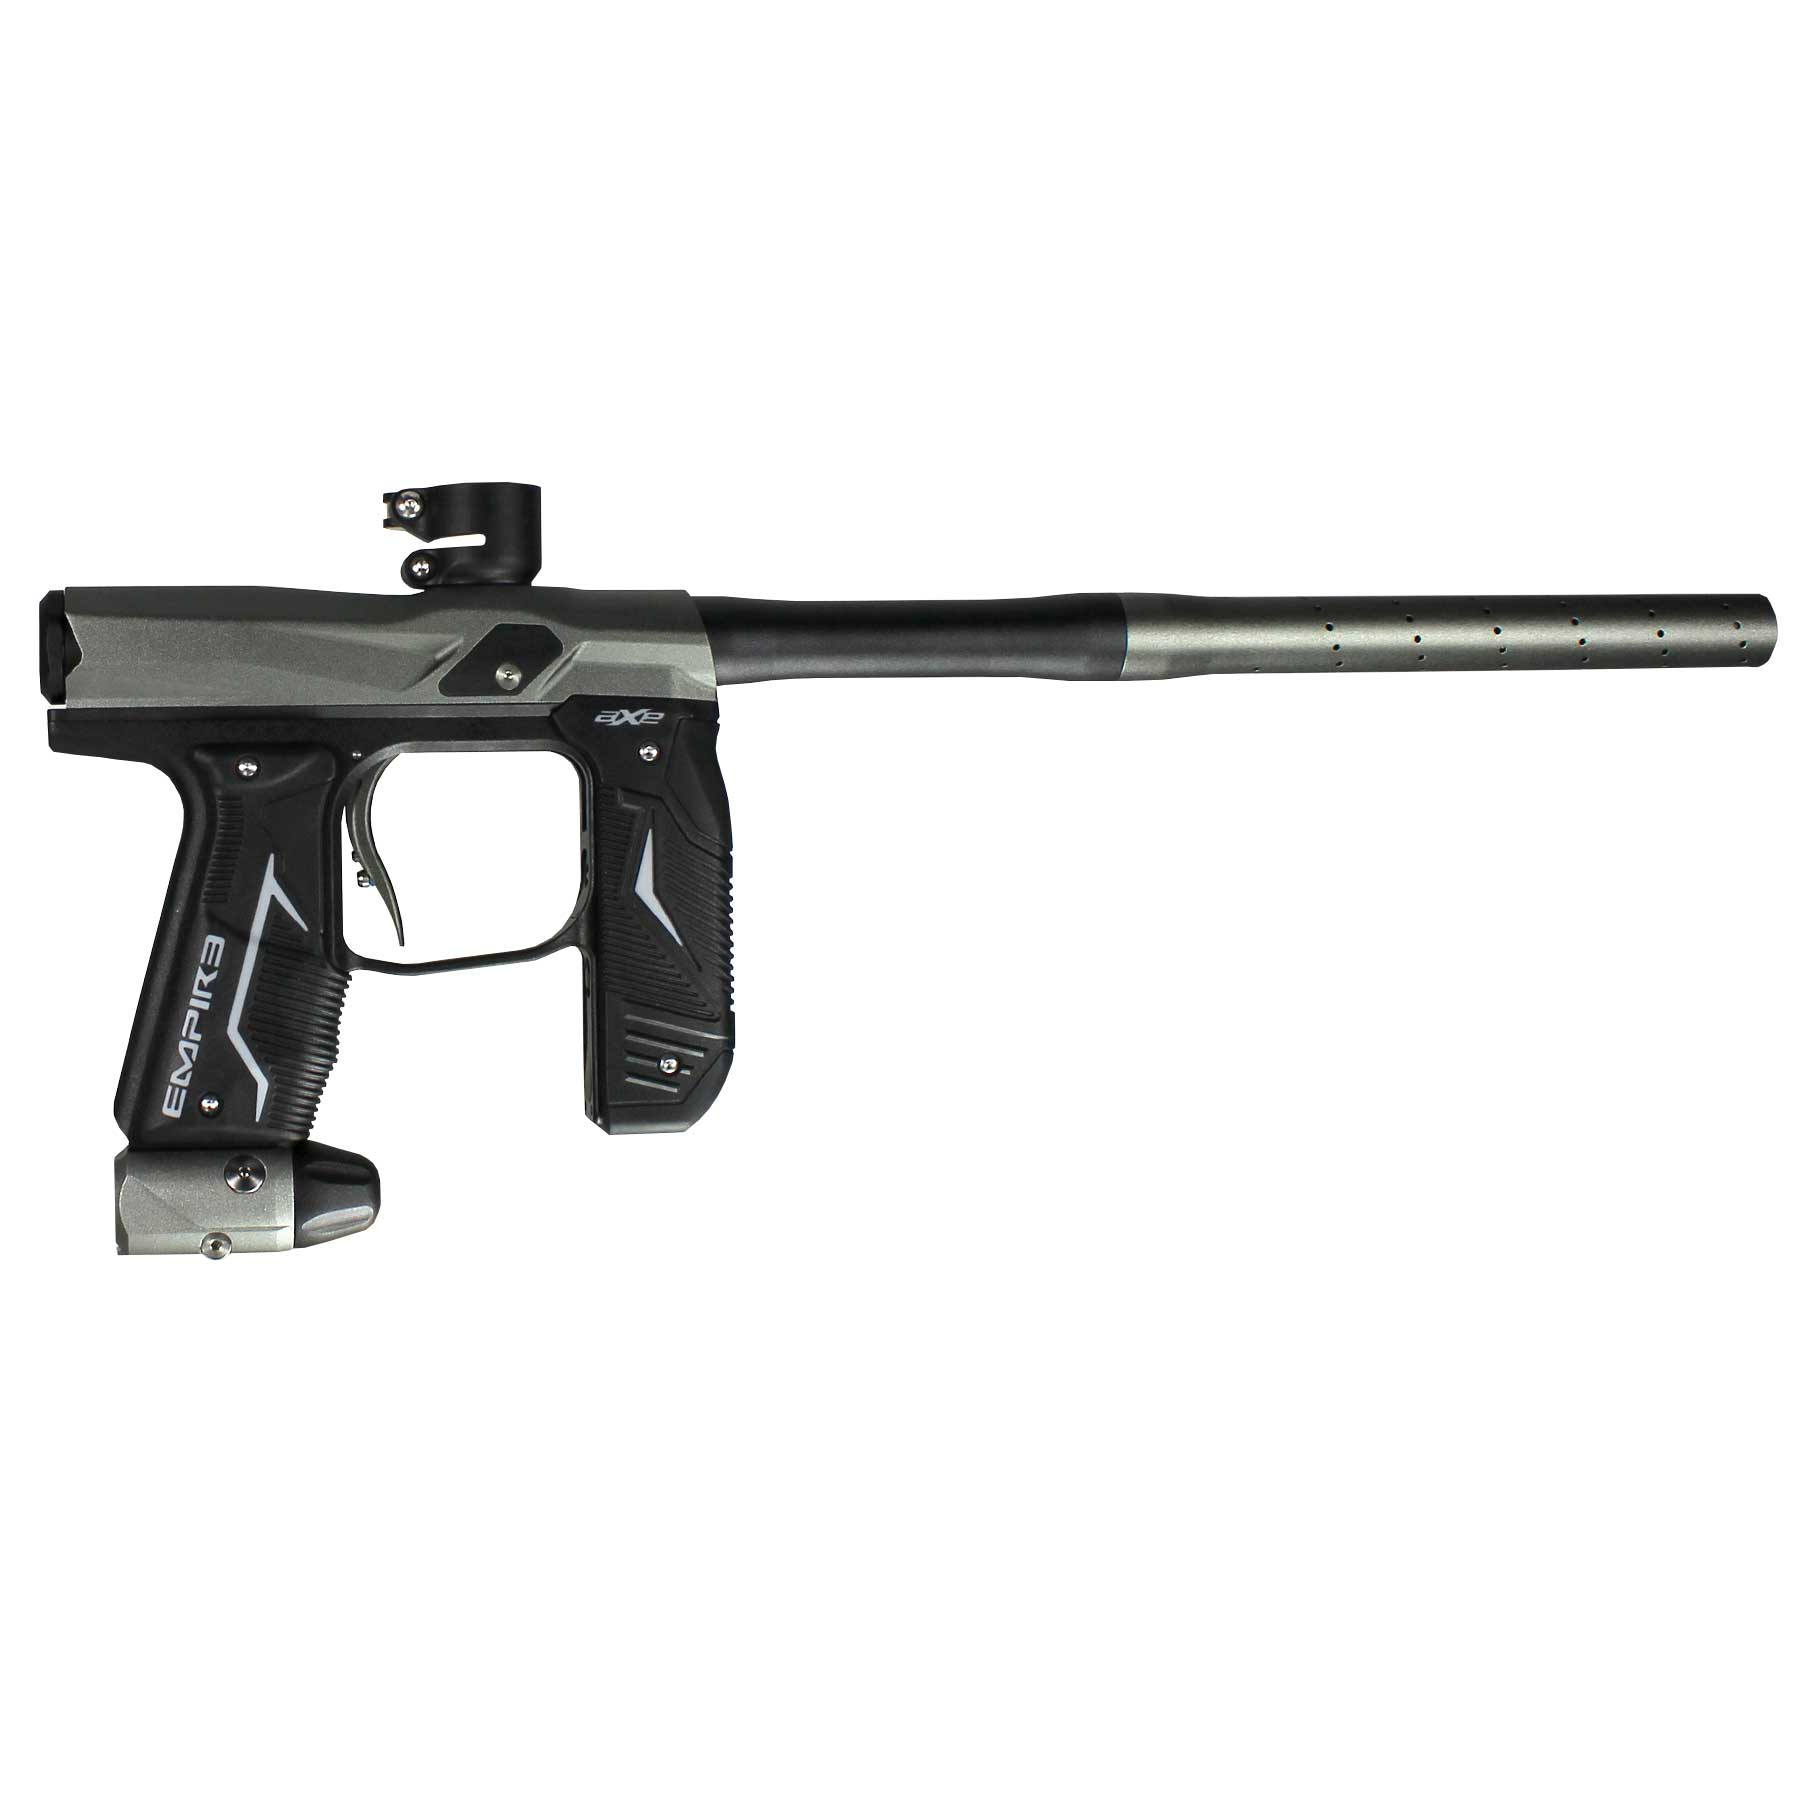 Woods ball paintball guns